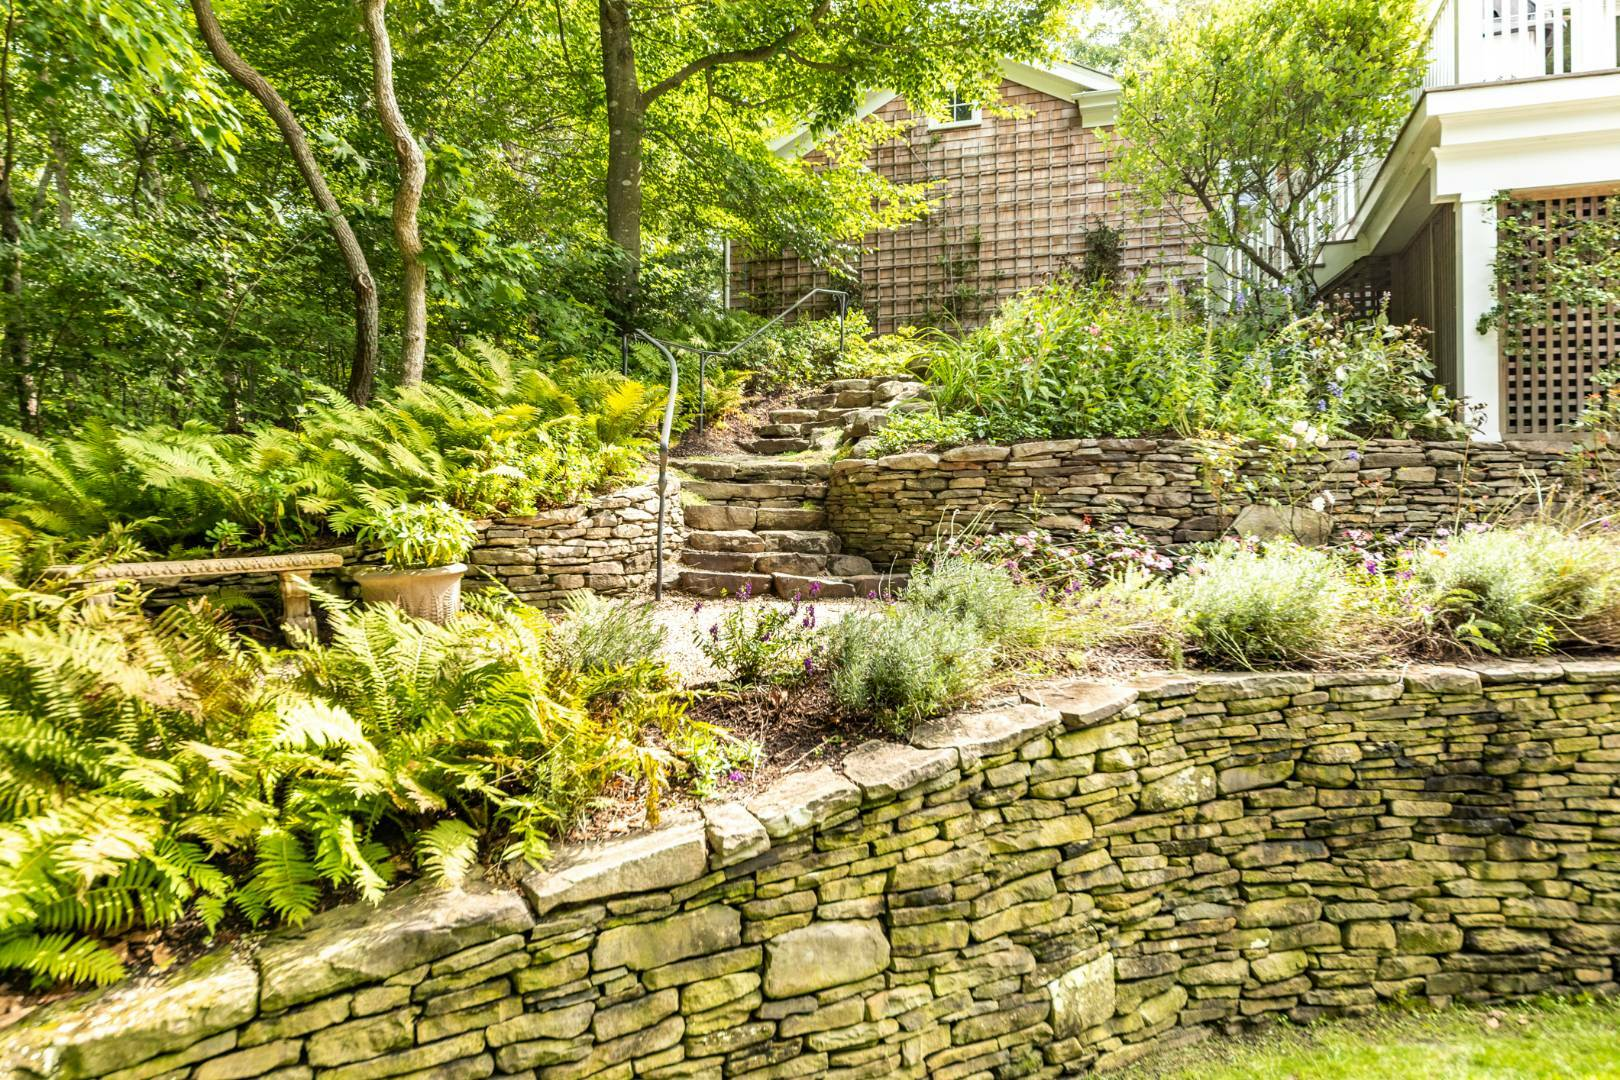 The gardens at 6 Catulpa Place, built on a kettle hole.